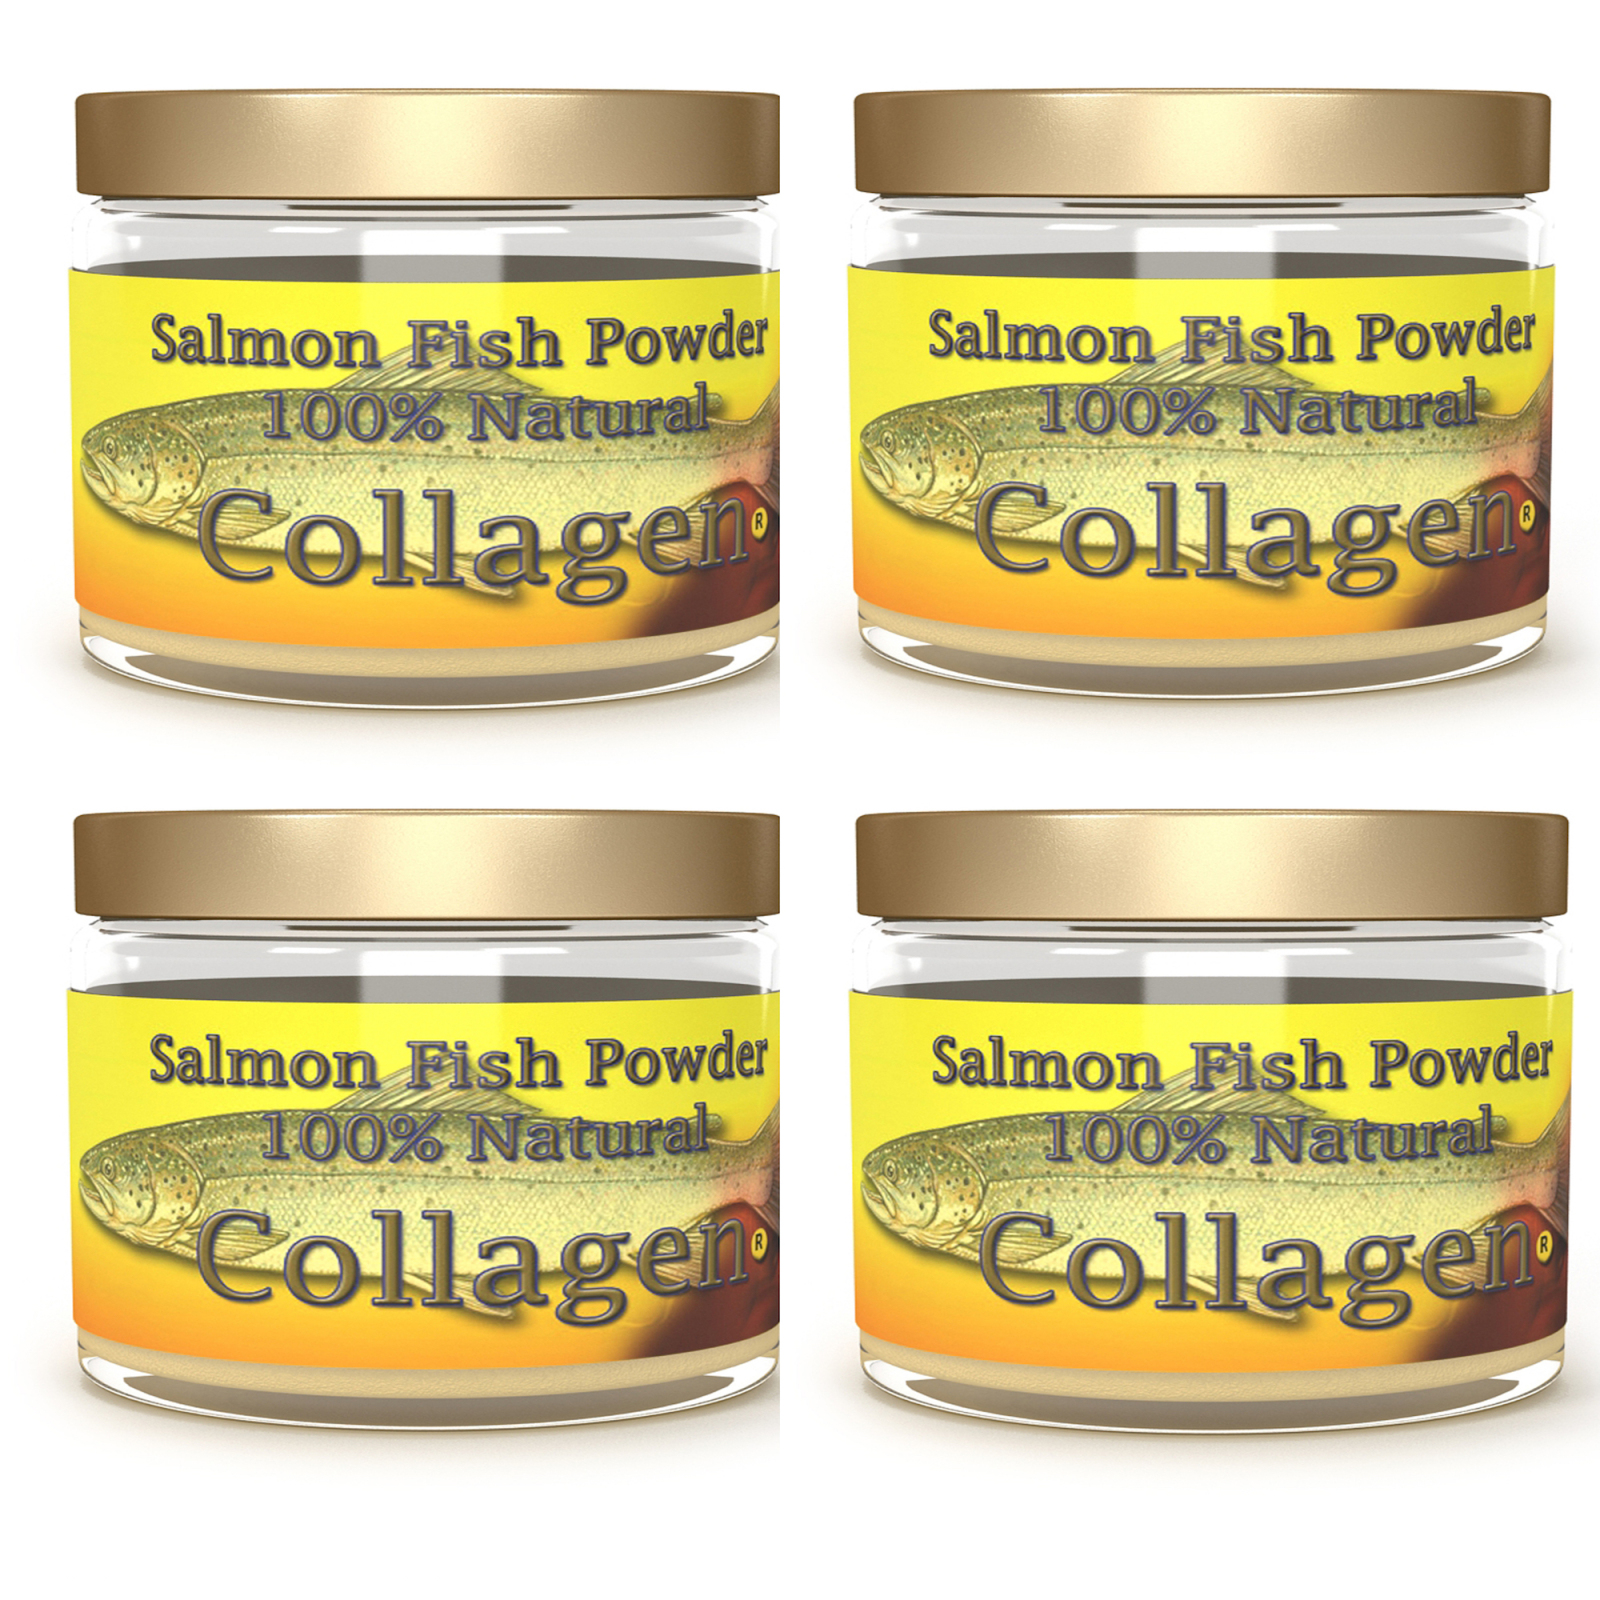 SALCOLL COLLAGEN Marine Collagen - Salmon Collagen for Joint Pain, Rheumatoid Arthritis, Osteoporosis - Aids Tissue, Cartilage & Bone Regeneration to Improve Energy, Mobility & Vitality - 4 x 1.23oz